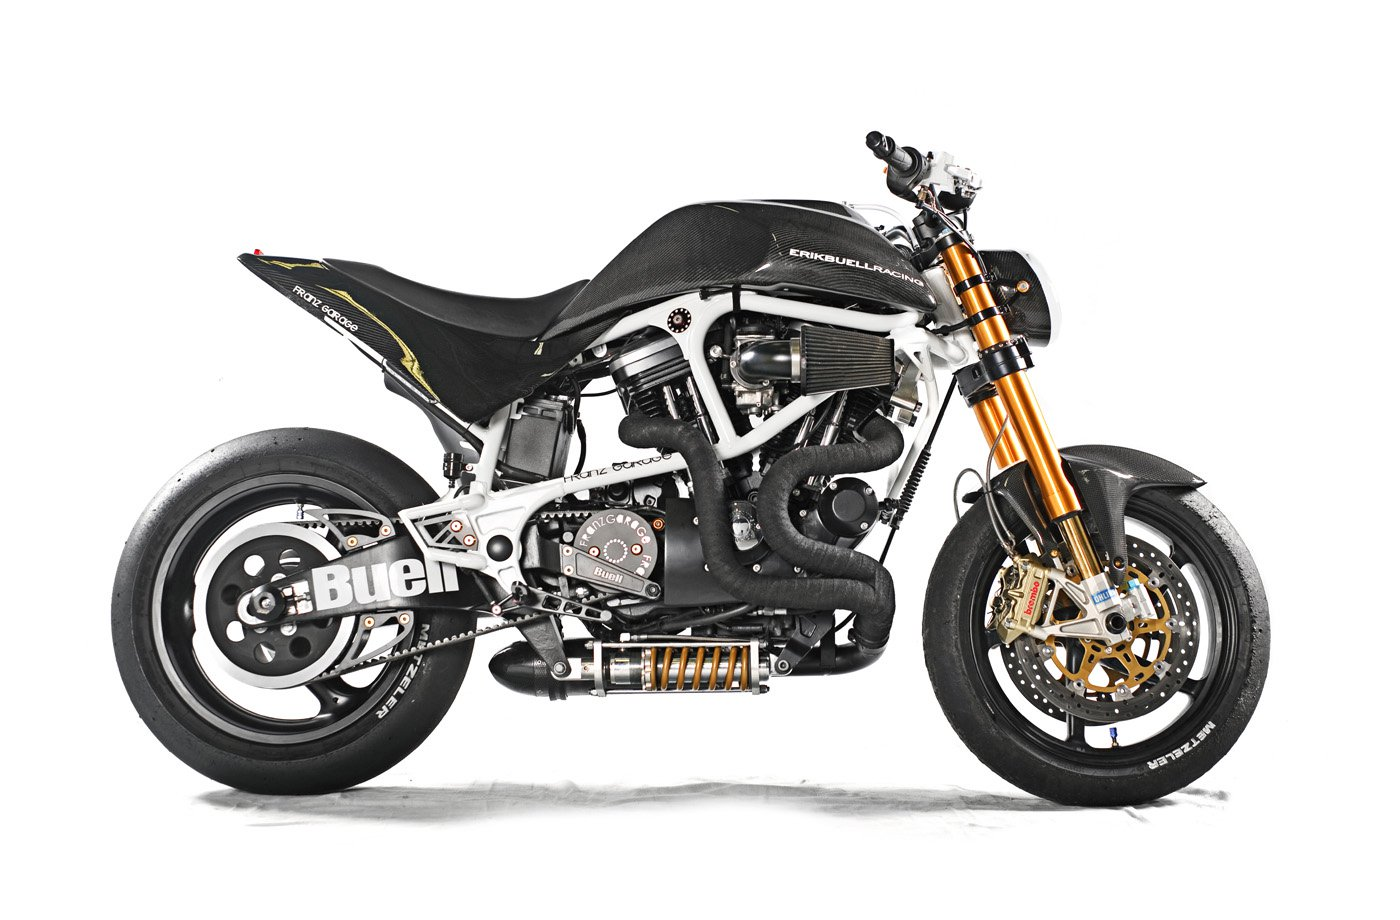 Buell s3